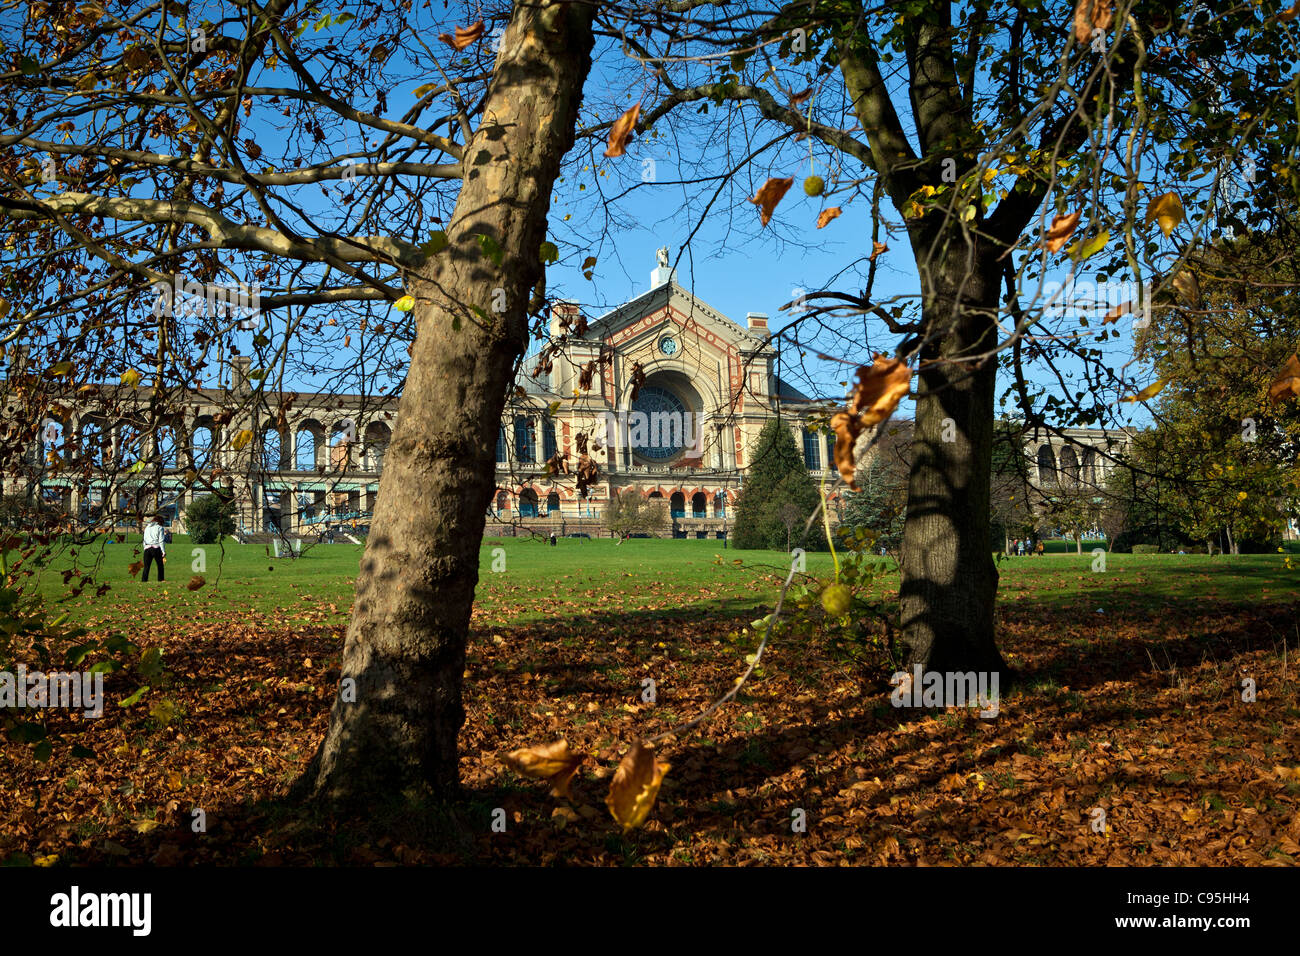 Alexandra Palace seen through Autumn trees - Stock Image